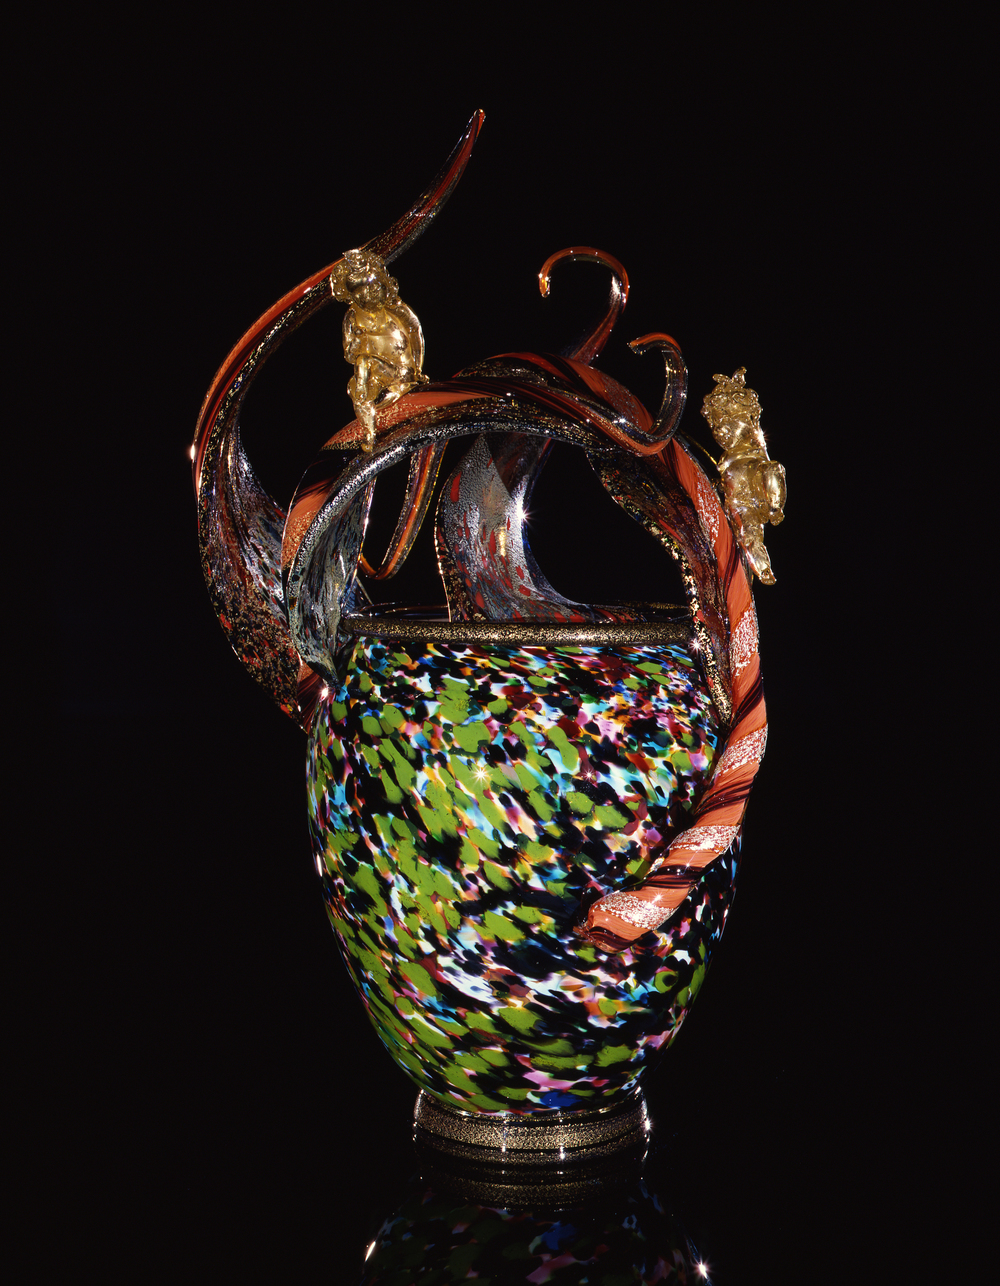 Dale Chihuly,  May Green Spotted Venetian with Two Putti  (1991, glass, 27 x 17 x 16 inches)